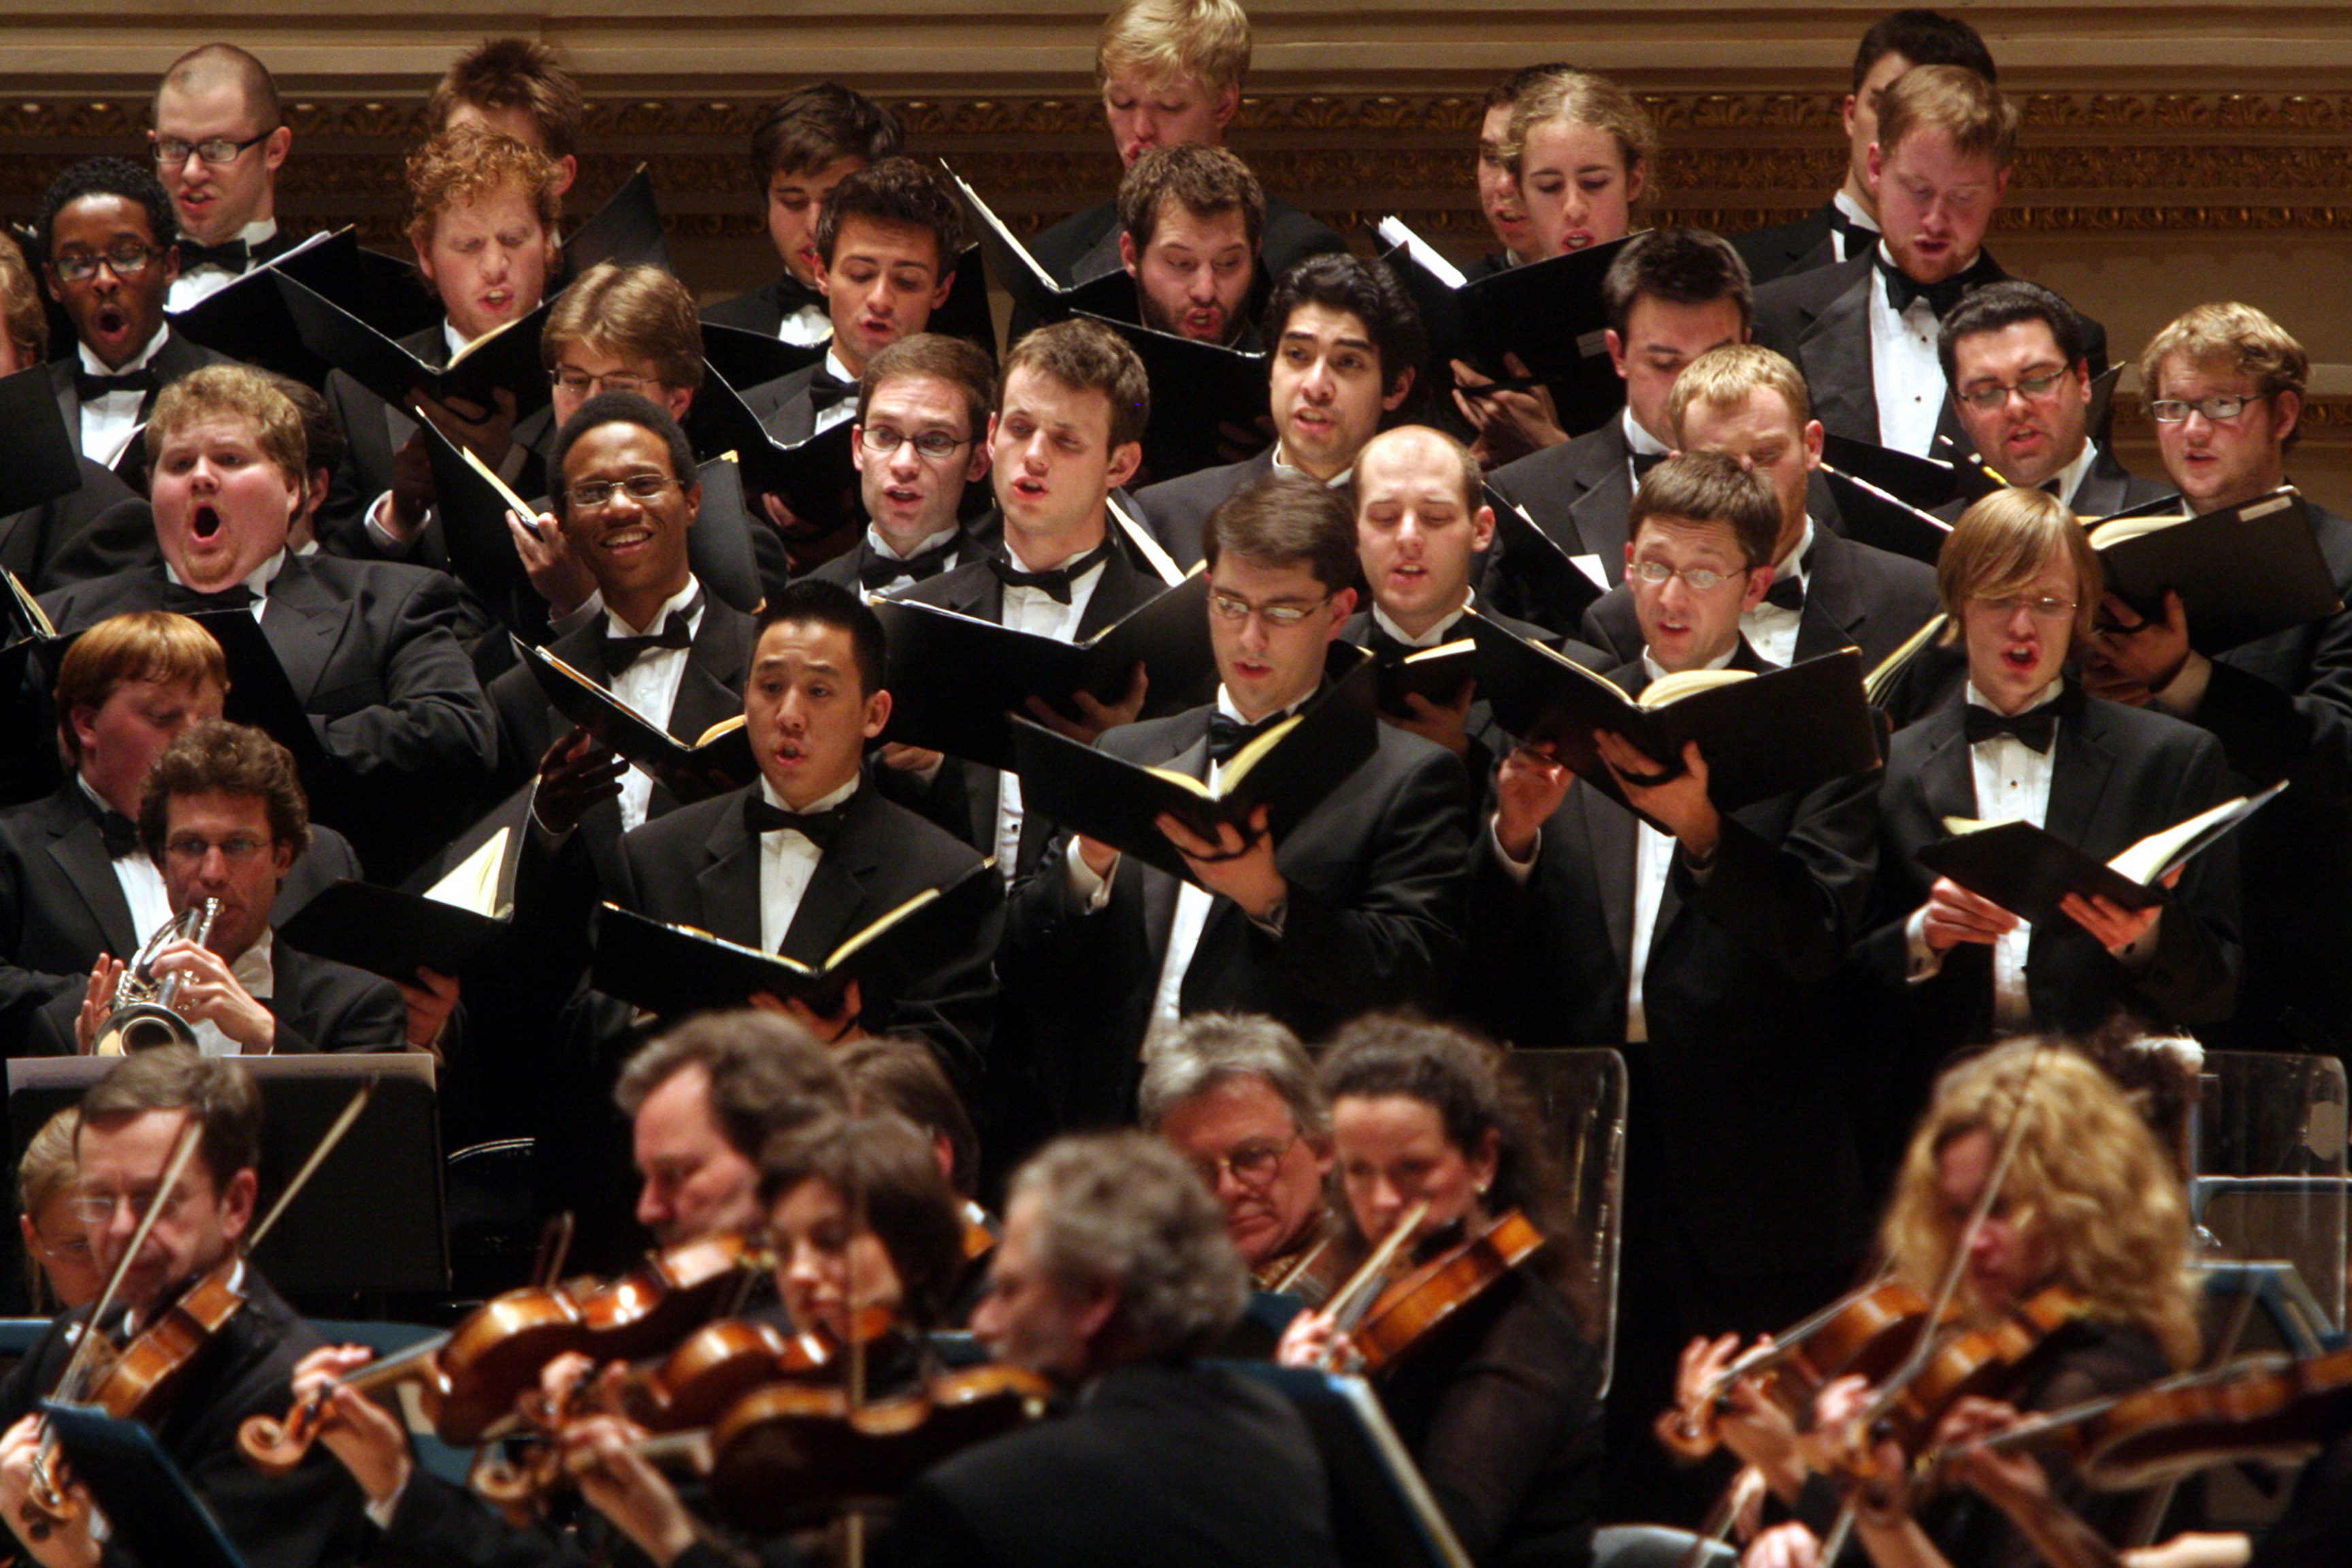 The Bavarian Radio Symphony Orchestra and the West